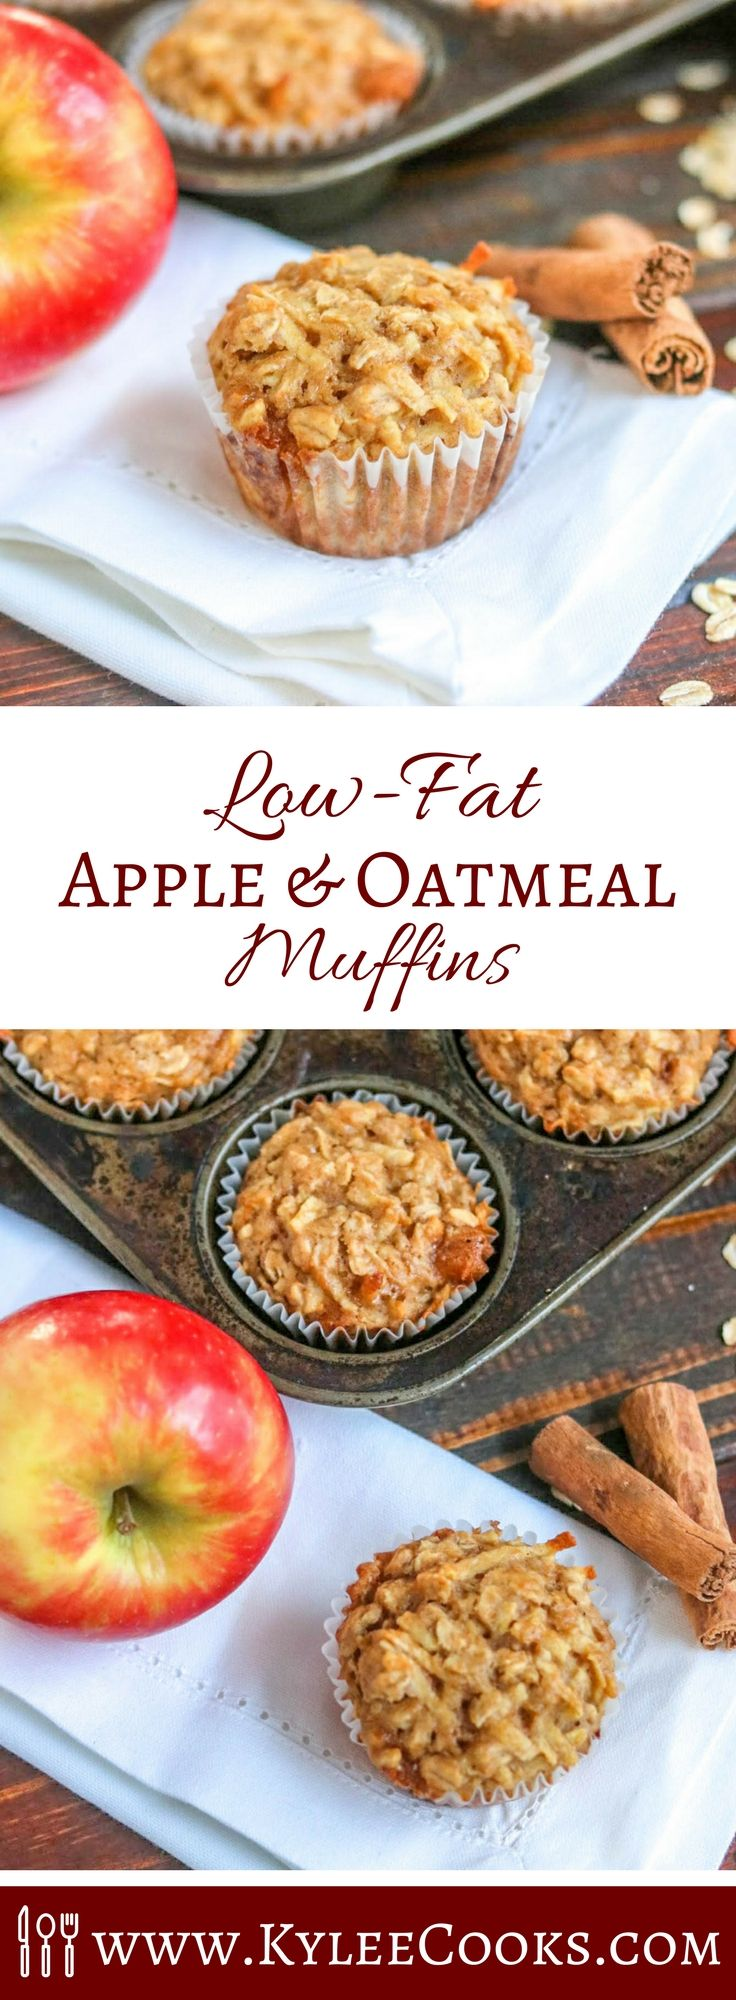 Low fat and hearty – these Apple Oatmeal Muffins are great for bringing on a hike, packing in a lunch box, or eating straight from the oven! #lowfat #muffins #healthy #oatmeal #apples #backtoschool via @kyleecooks